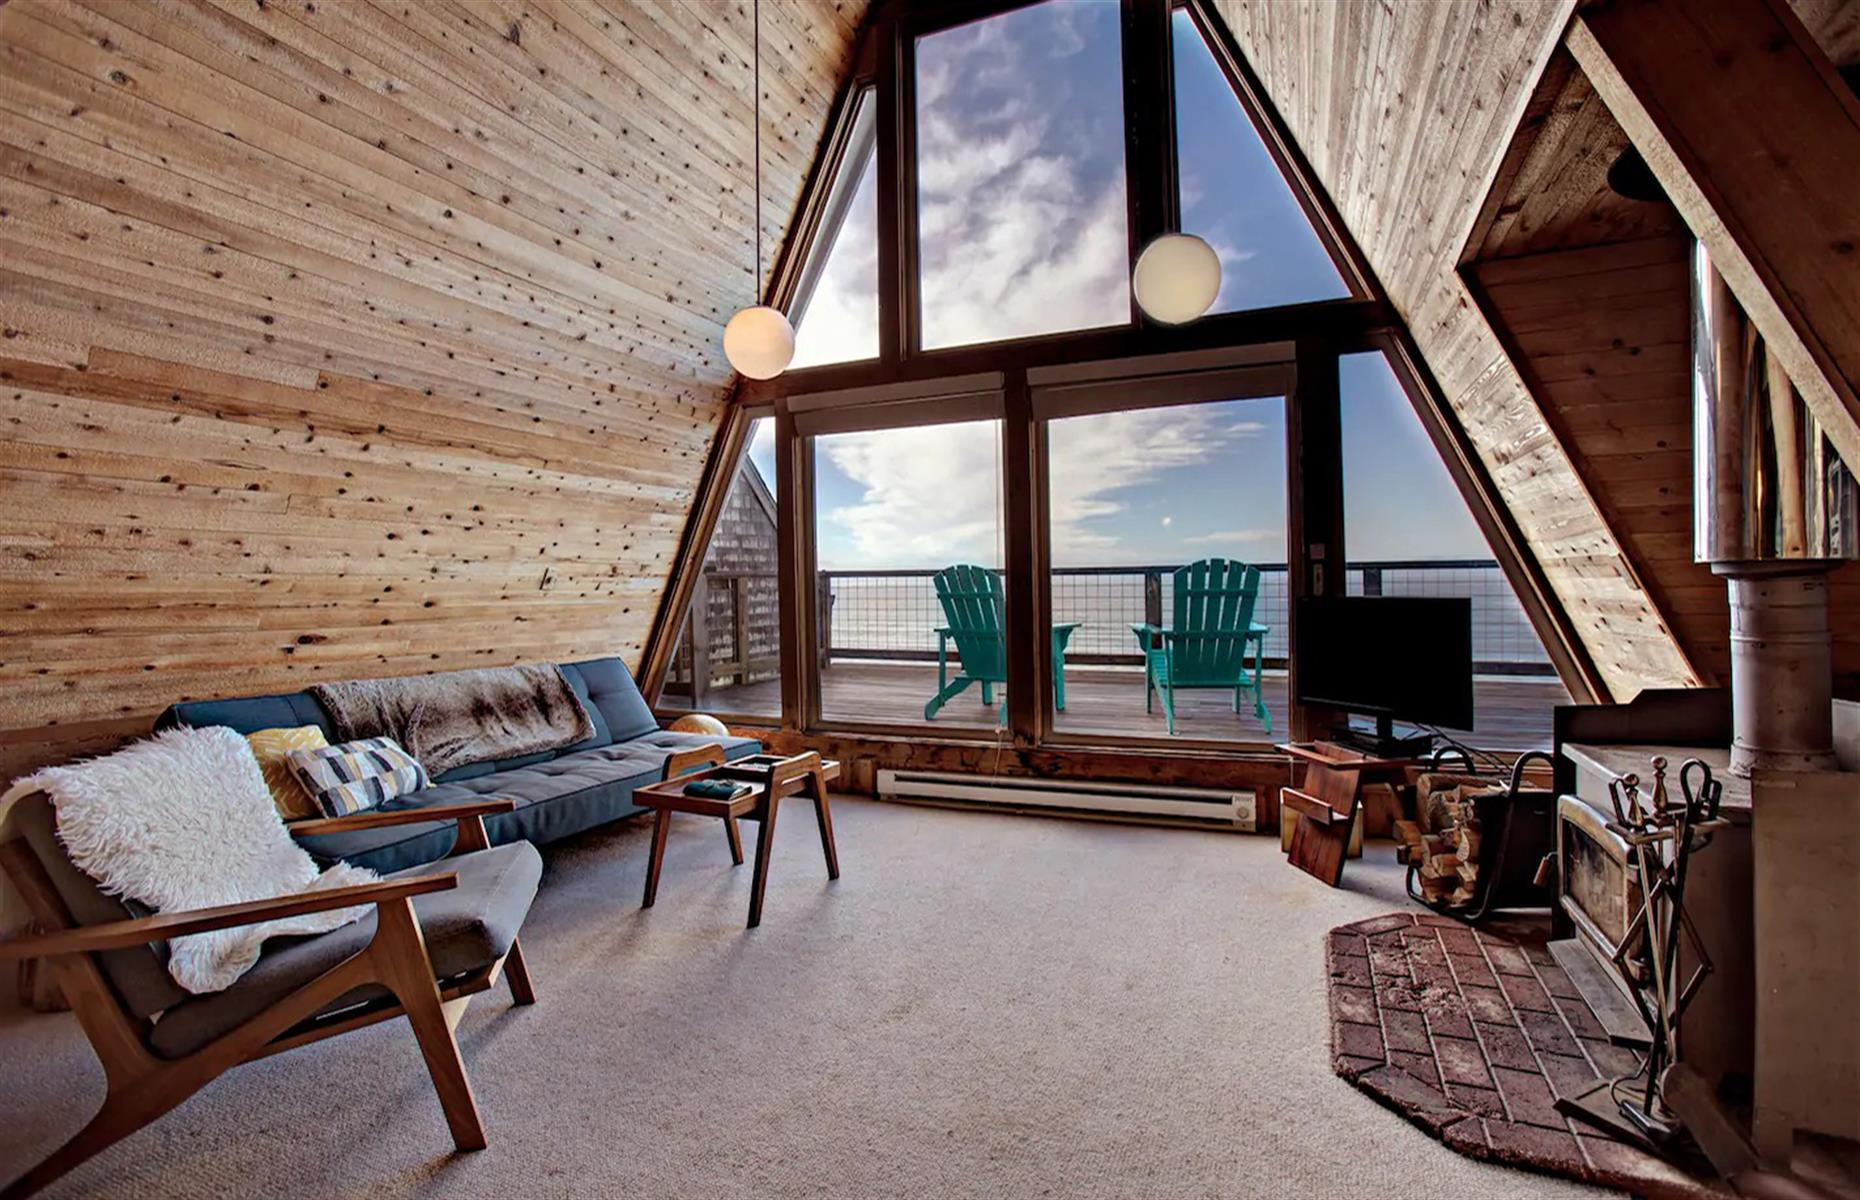 Slide 39 of 52: Go to bed with waves lulling you to sleep at this dreamy Oceanside escape. Located just steps from the beach, the two-bedroom home is an unusual A-shape, offering ocean panoramas and unobstructed views from Cape Meares to Cape Lookout. The cabin also has a large private deck with a wood-burning stove for chilly nights. The area offers plenty of opportunities for hiking and nature exploration, and you shouldn't pass a chance to try your hand at crabbing and clam digging.